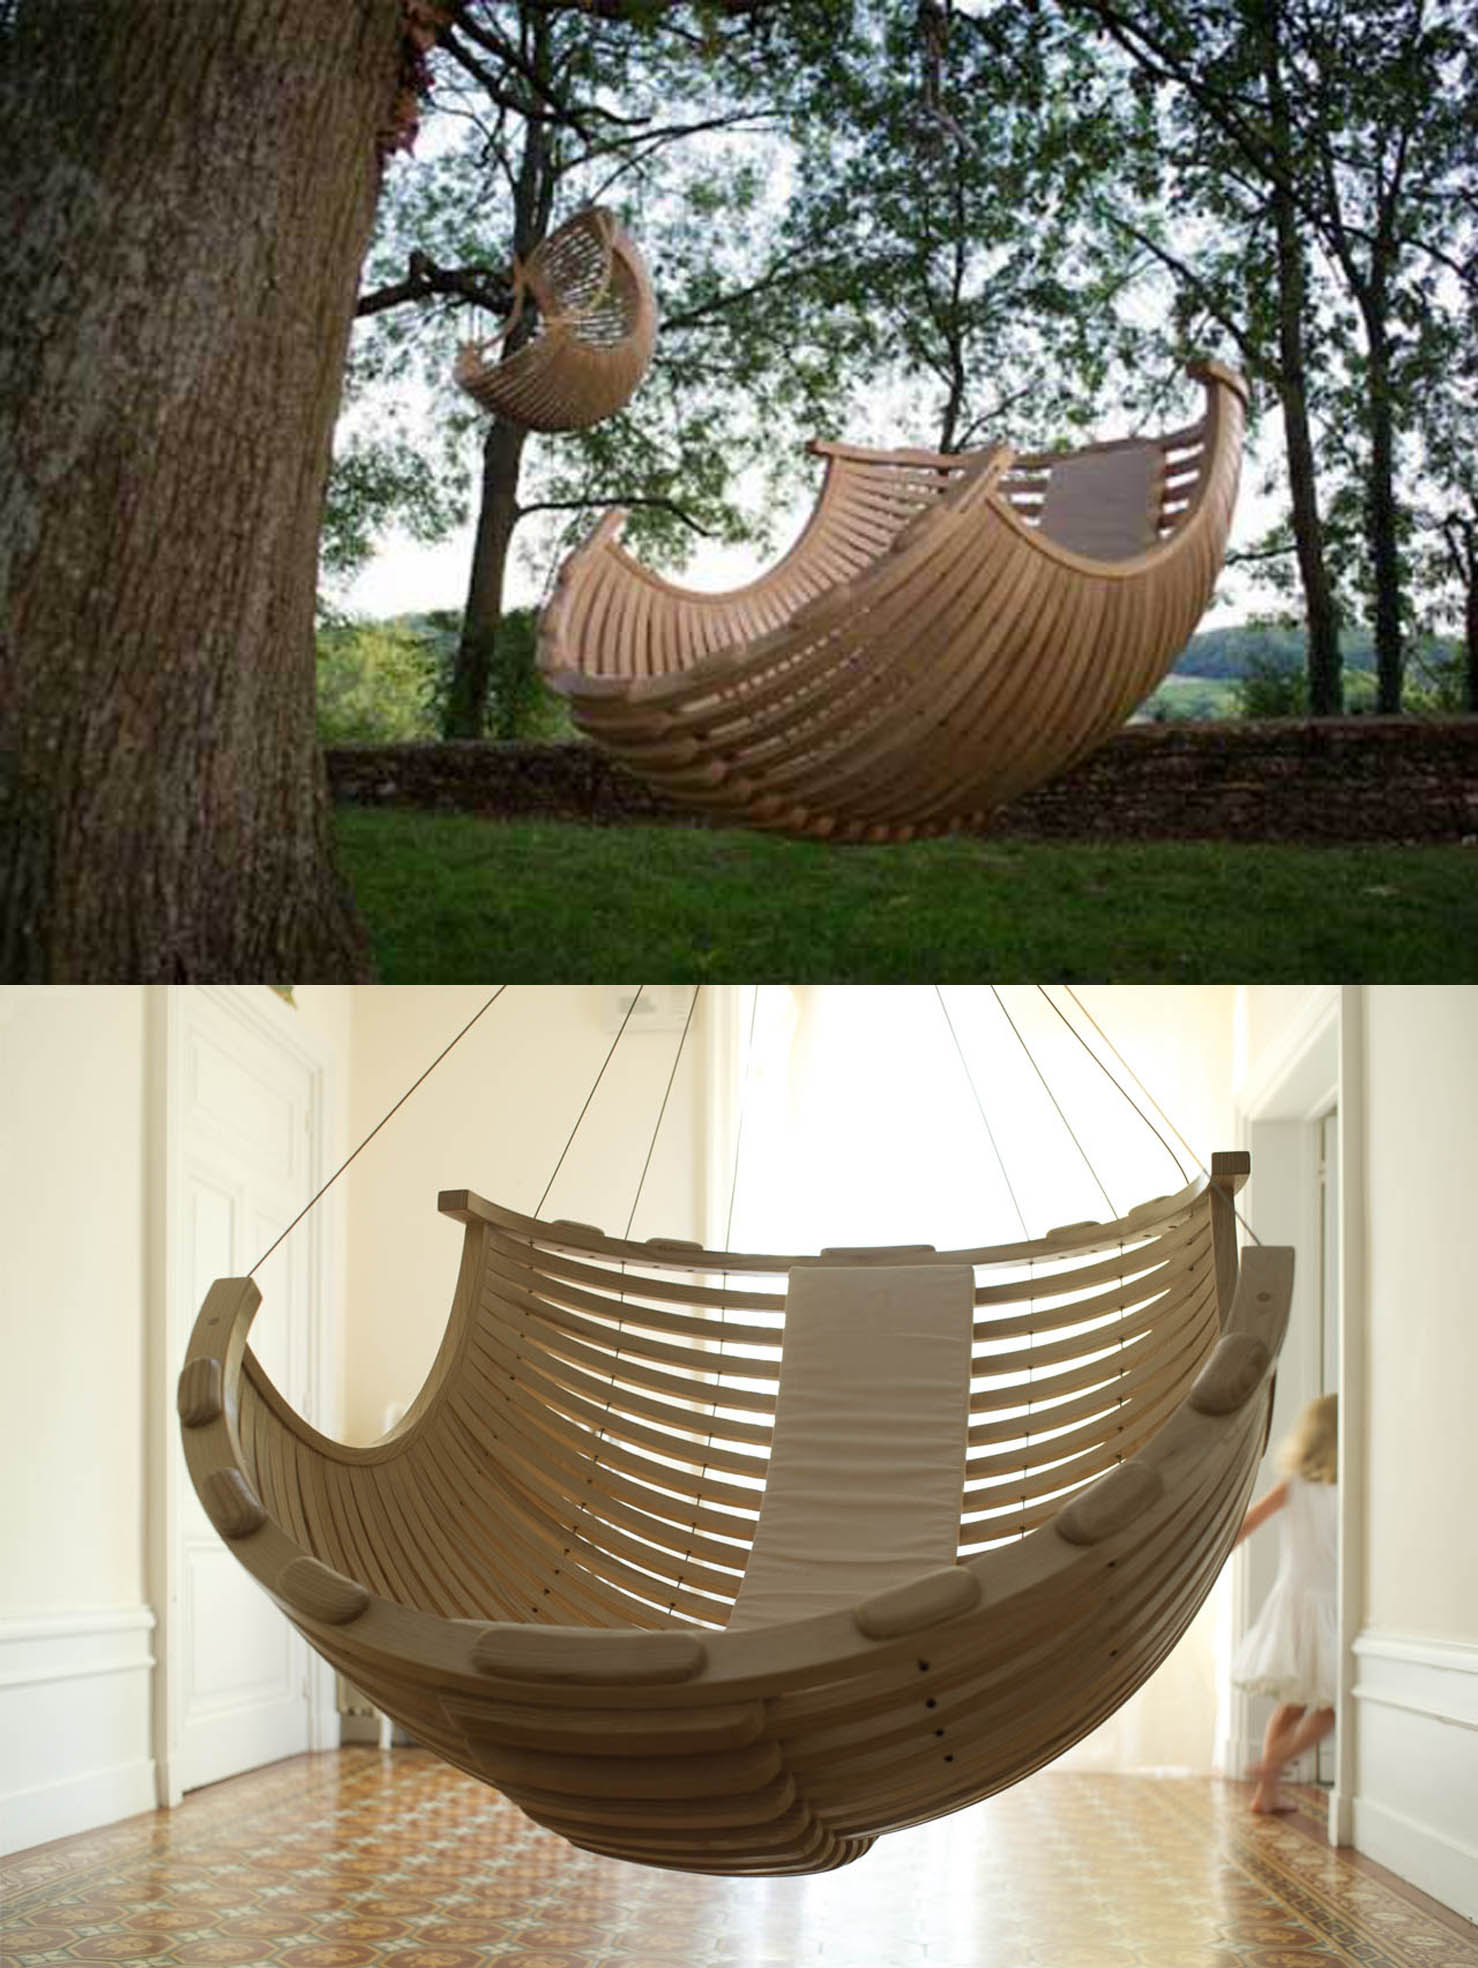 Hanging Outdoor Chairs Fantastic Furniture Outdoor Hanging Chairs F I N D S